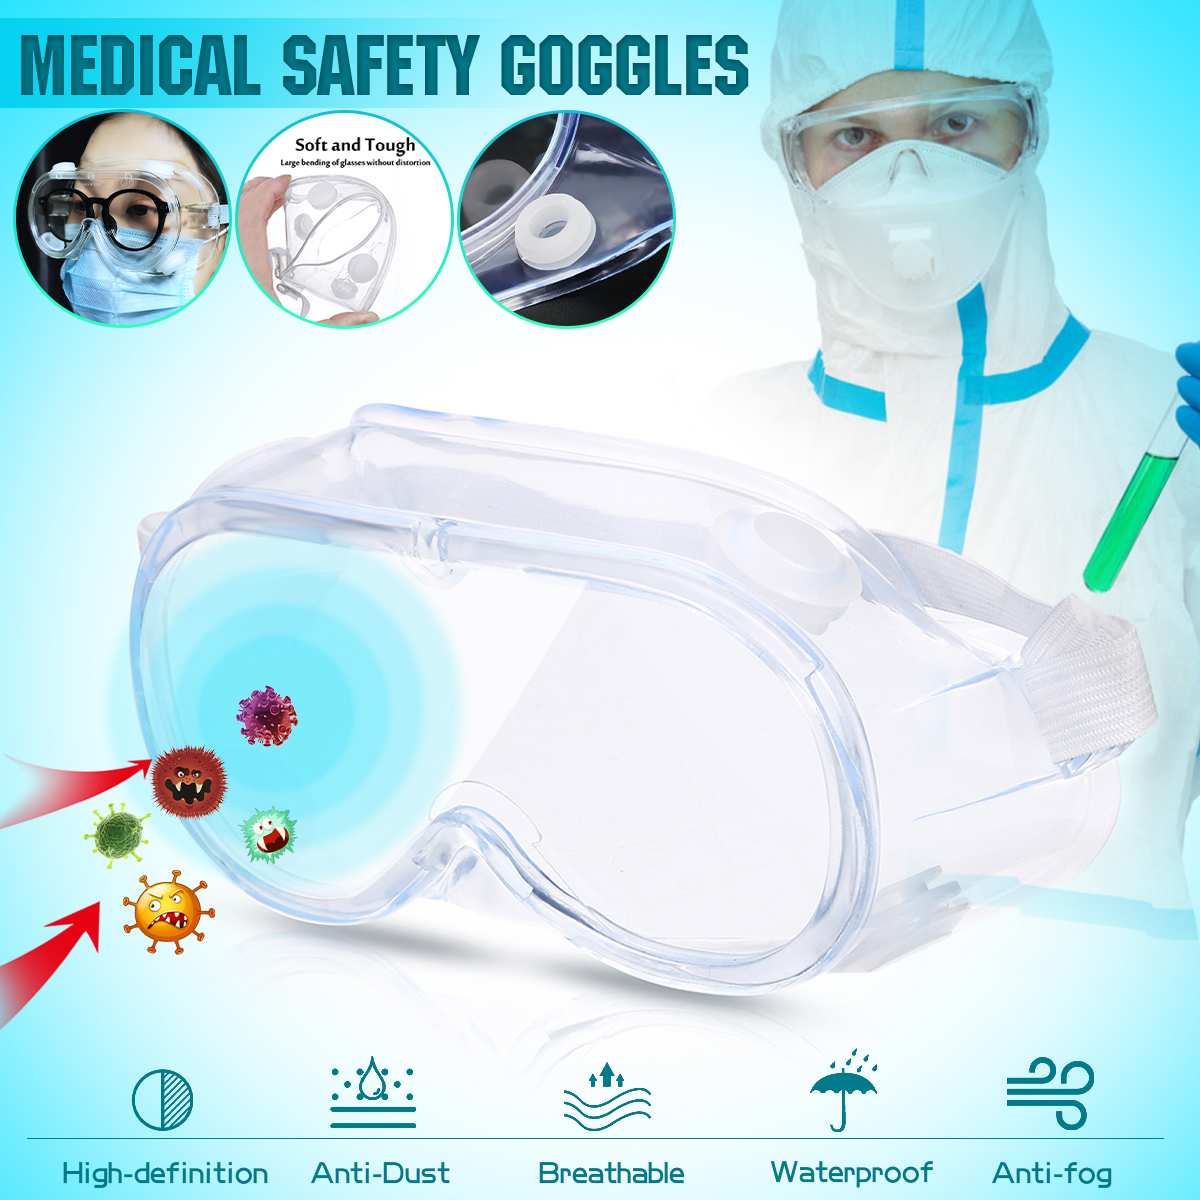 Medical Safety Goggles Transparent Lens Goggles Eye Protective Glasses Anti-Fog Antisand Dust Resist UV Light Fully Enclosed